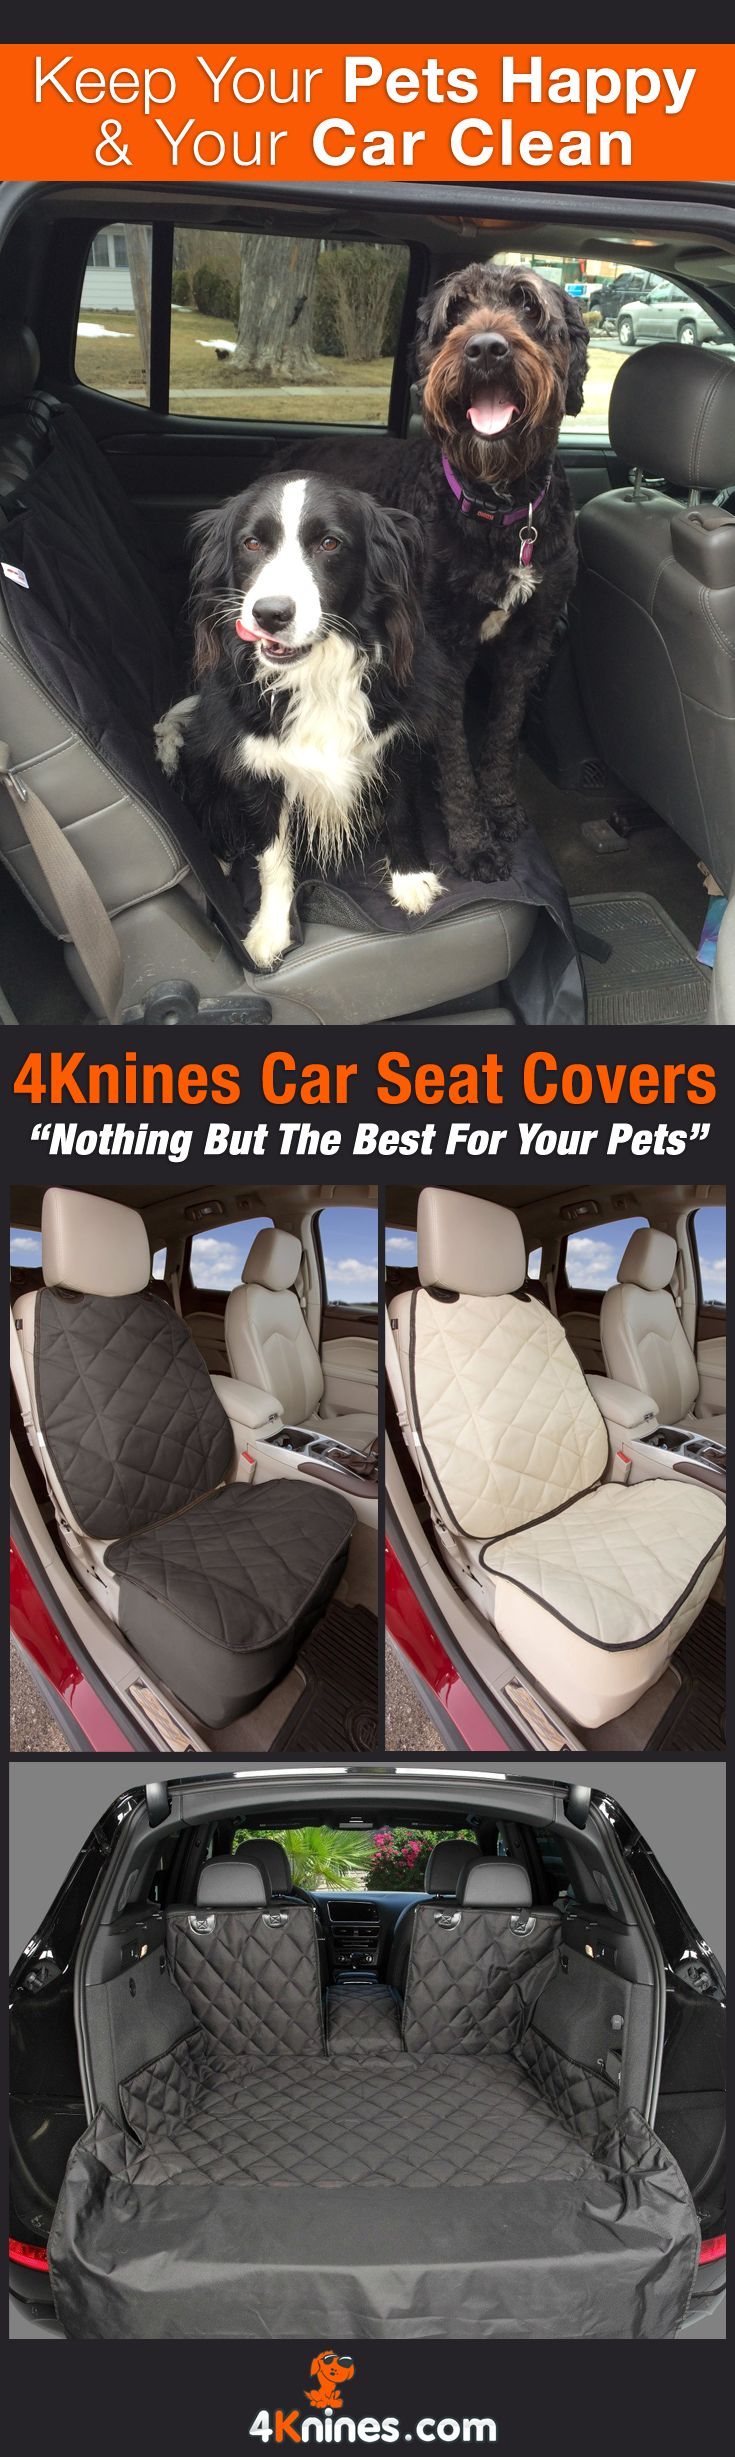 Shop For Durable Pet Car Seat Covers At Our Dog Are Made From Beautiful Material And Keep The Interior Of Your Clean